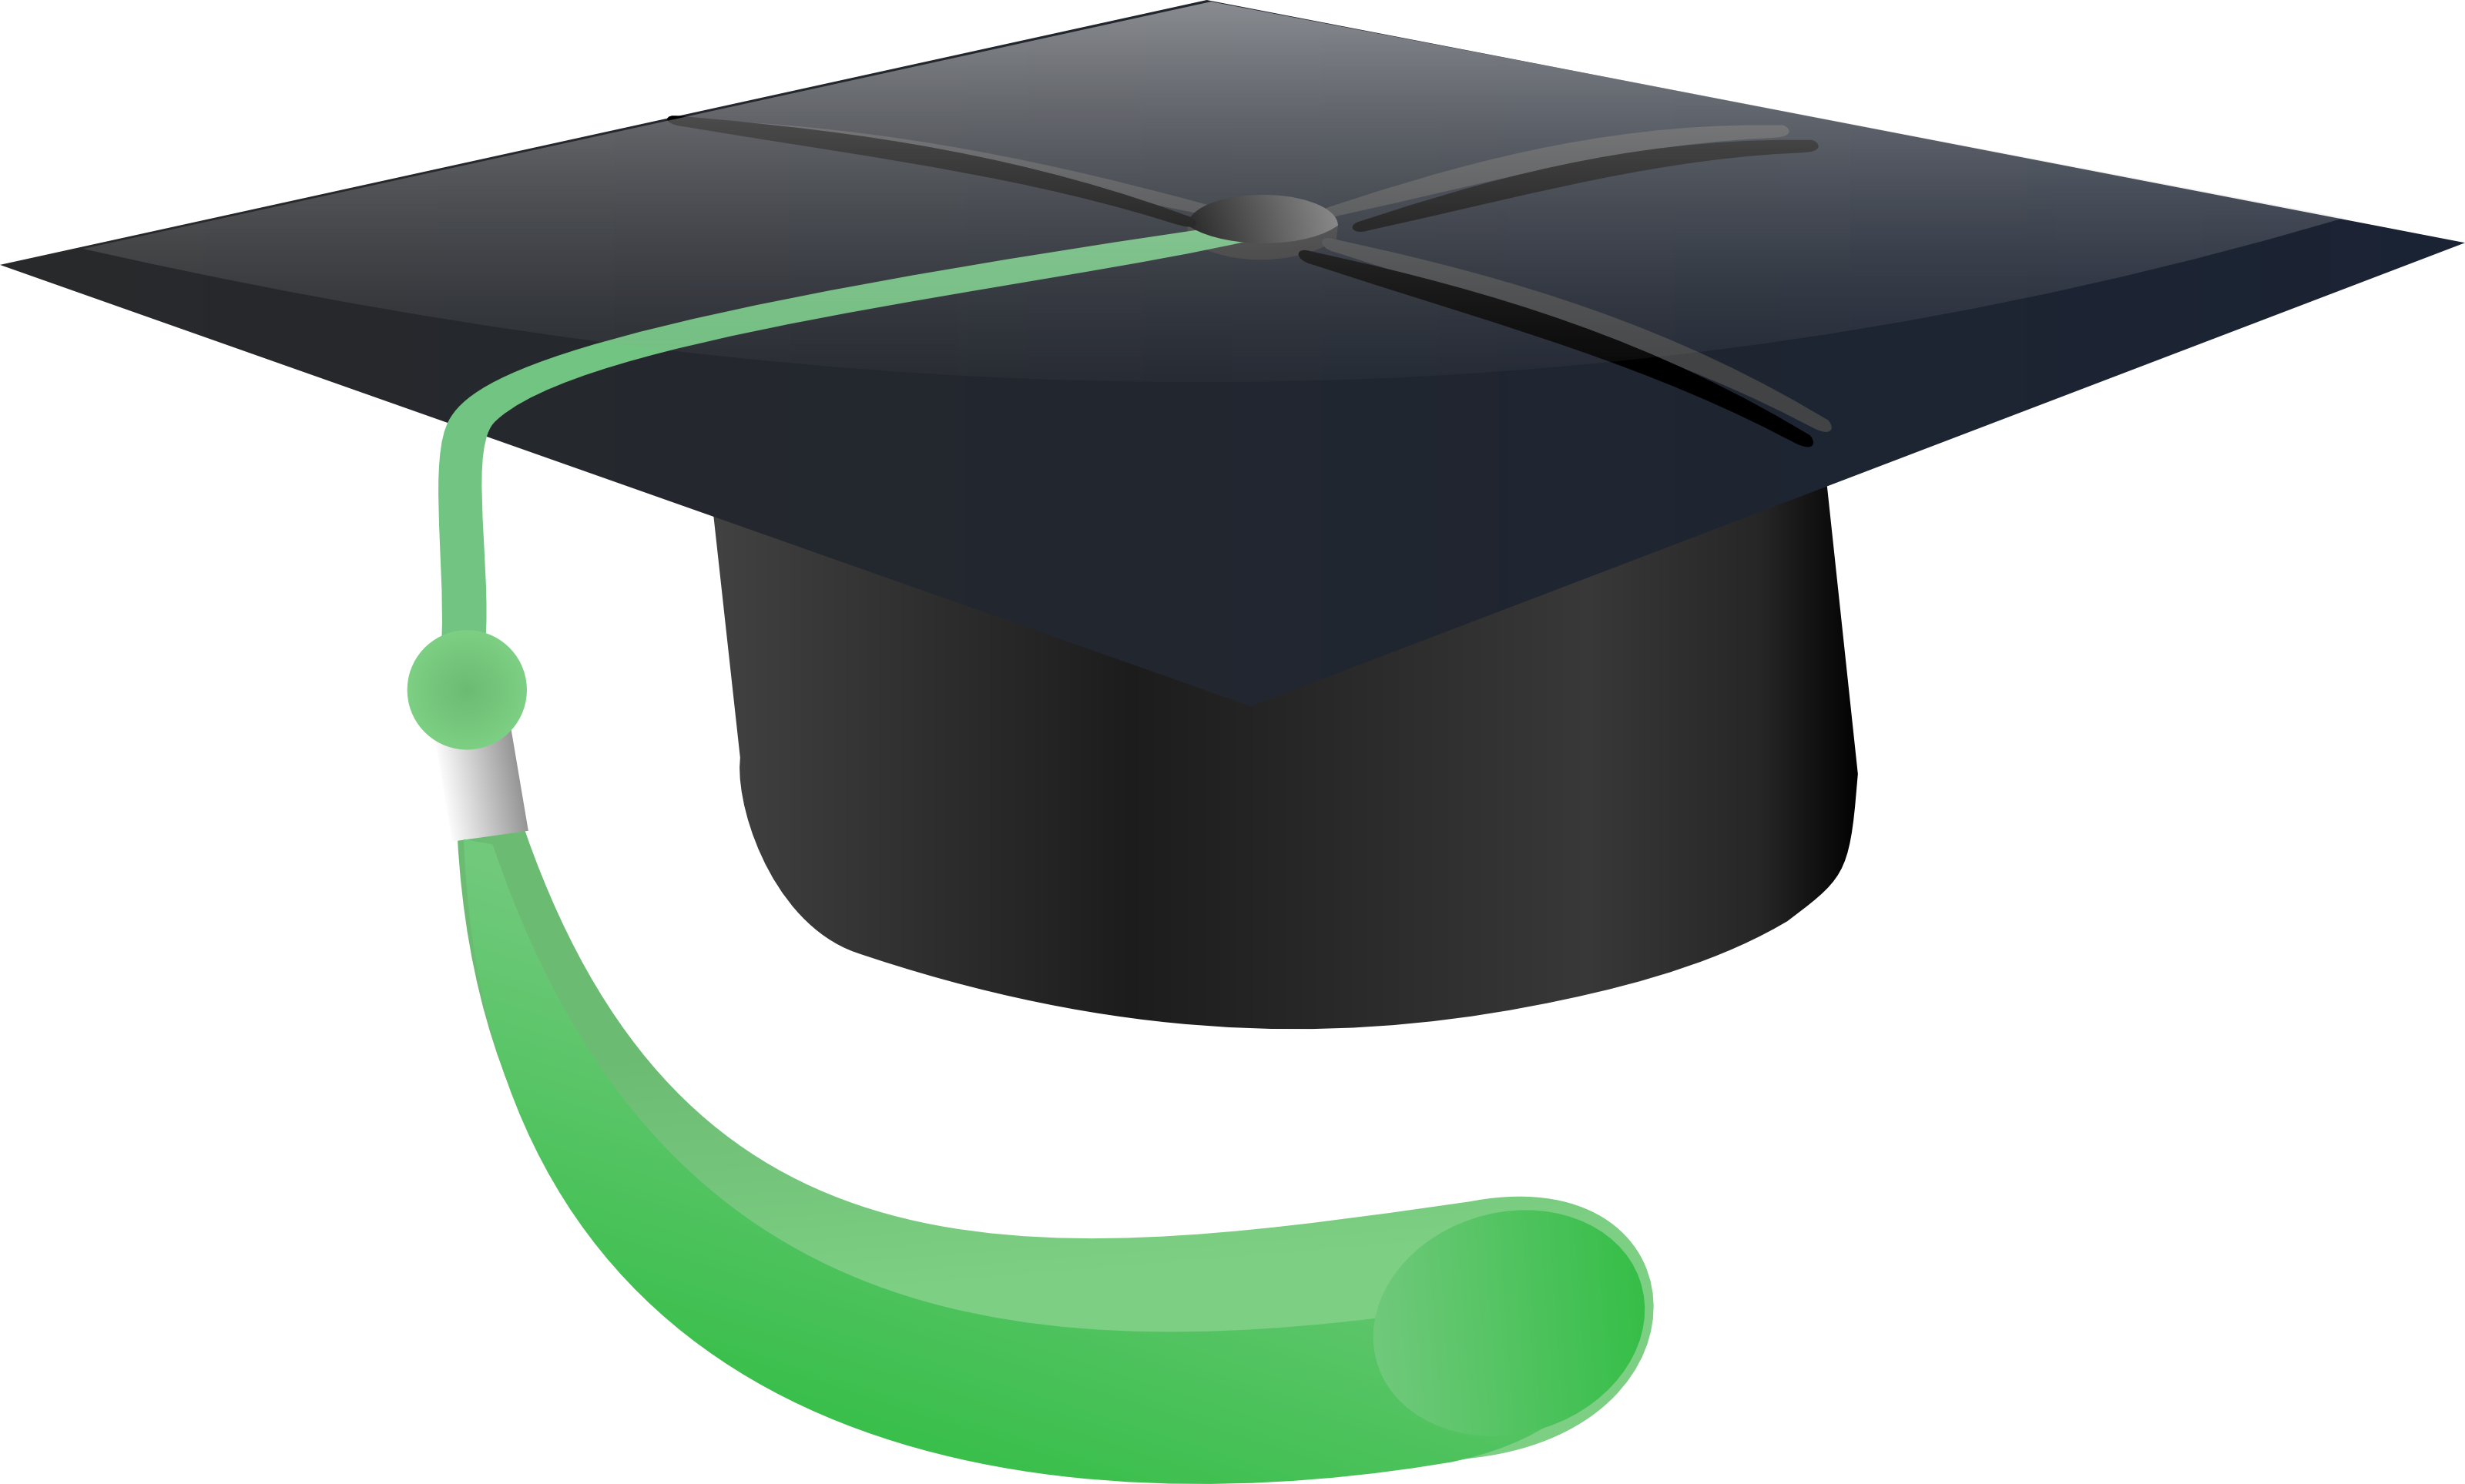 Free Graduation Cap And Gown Clipart